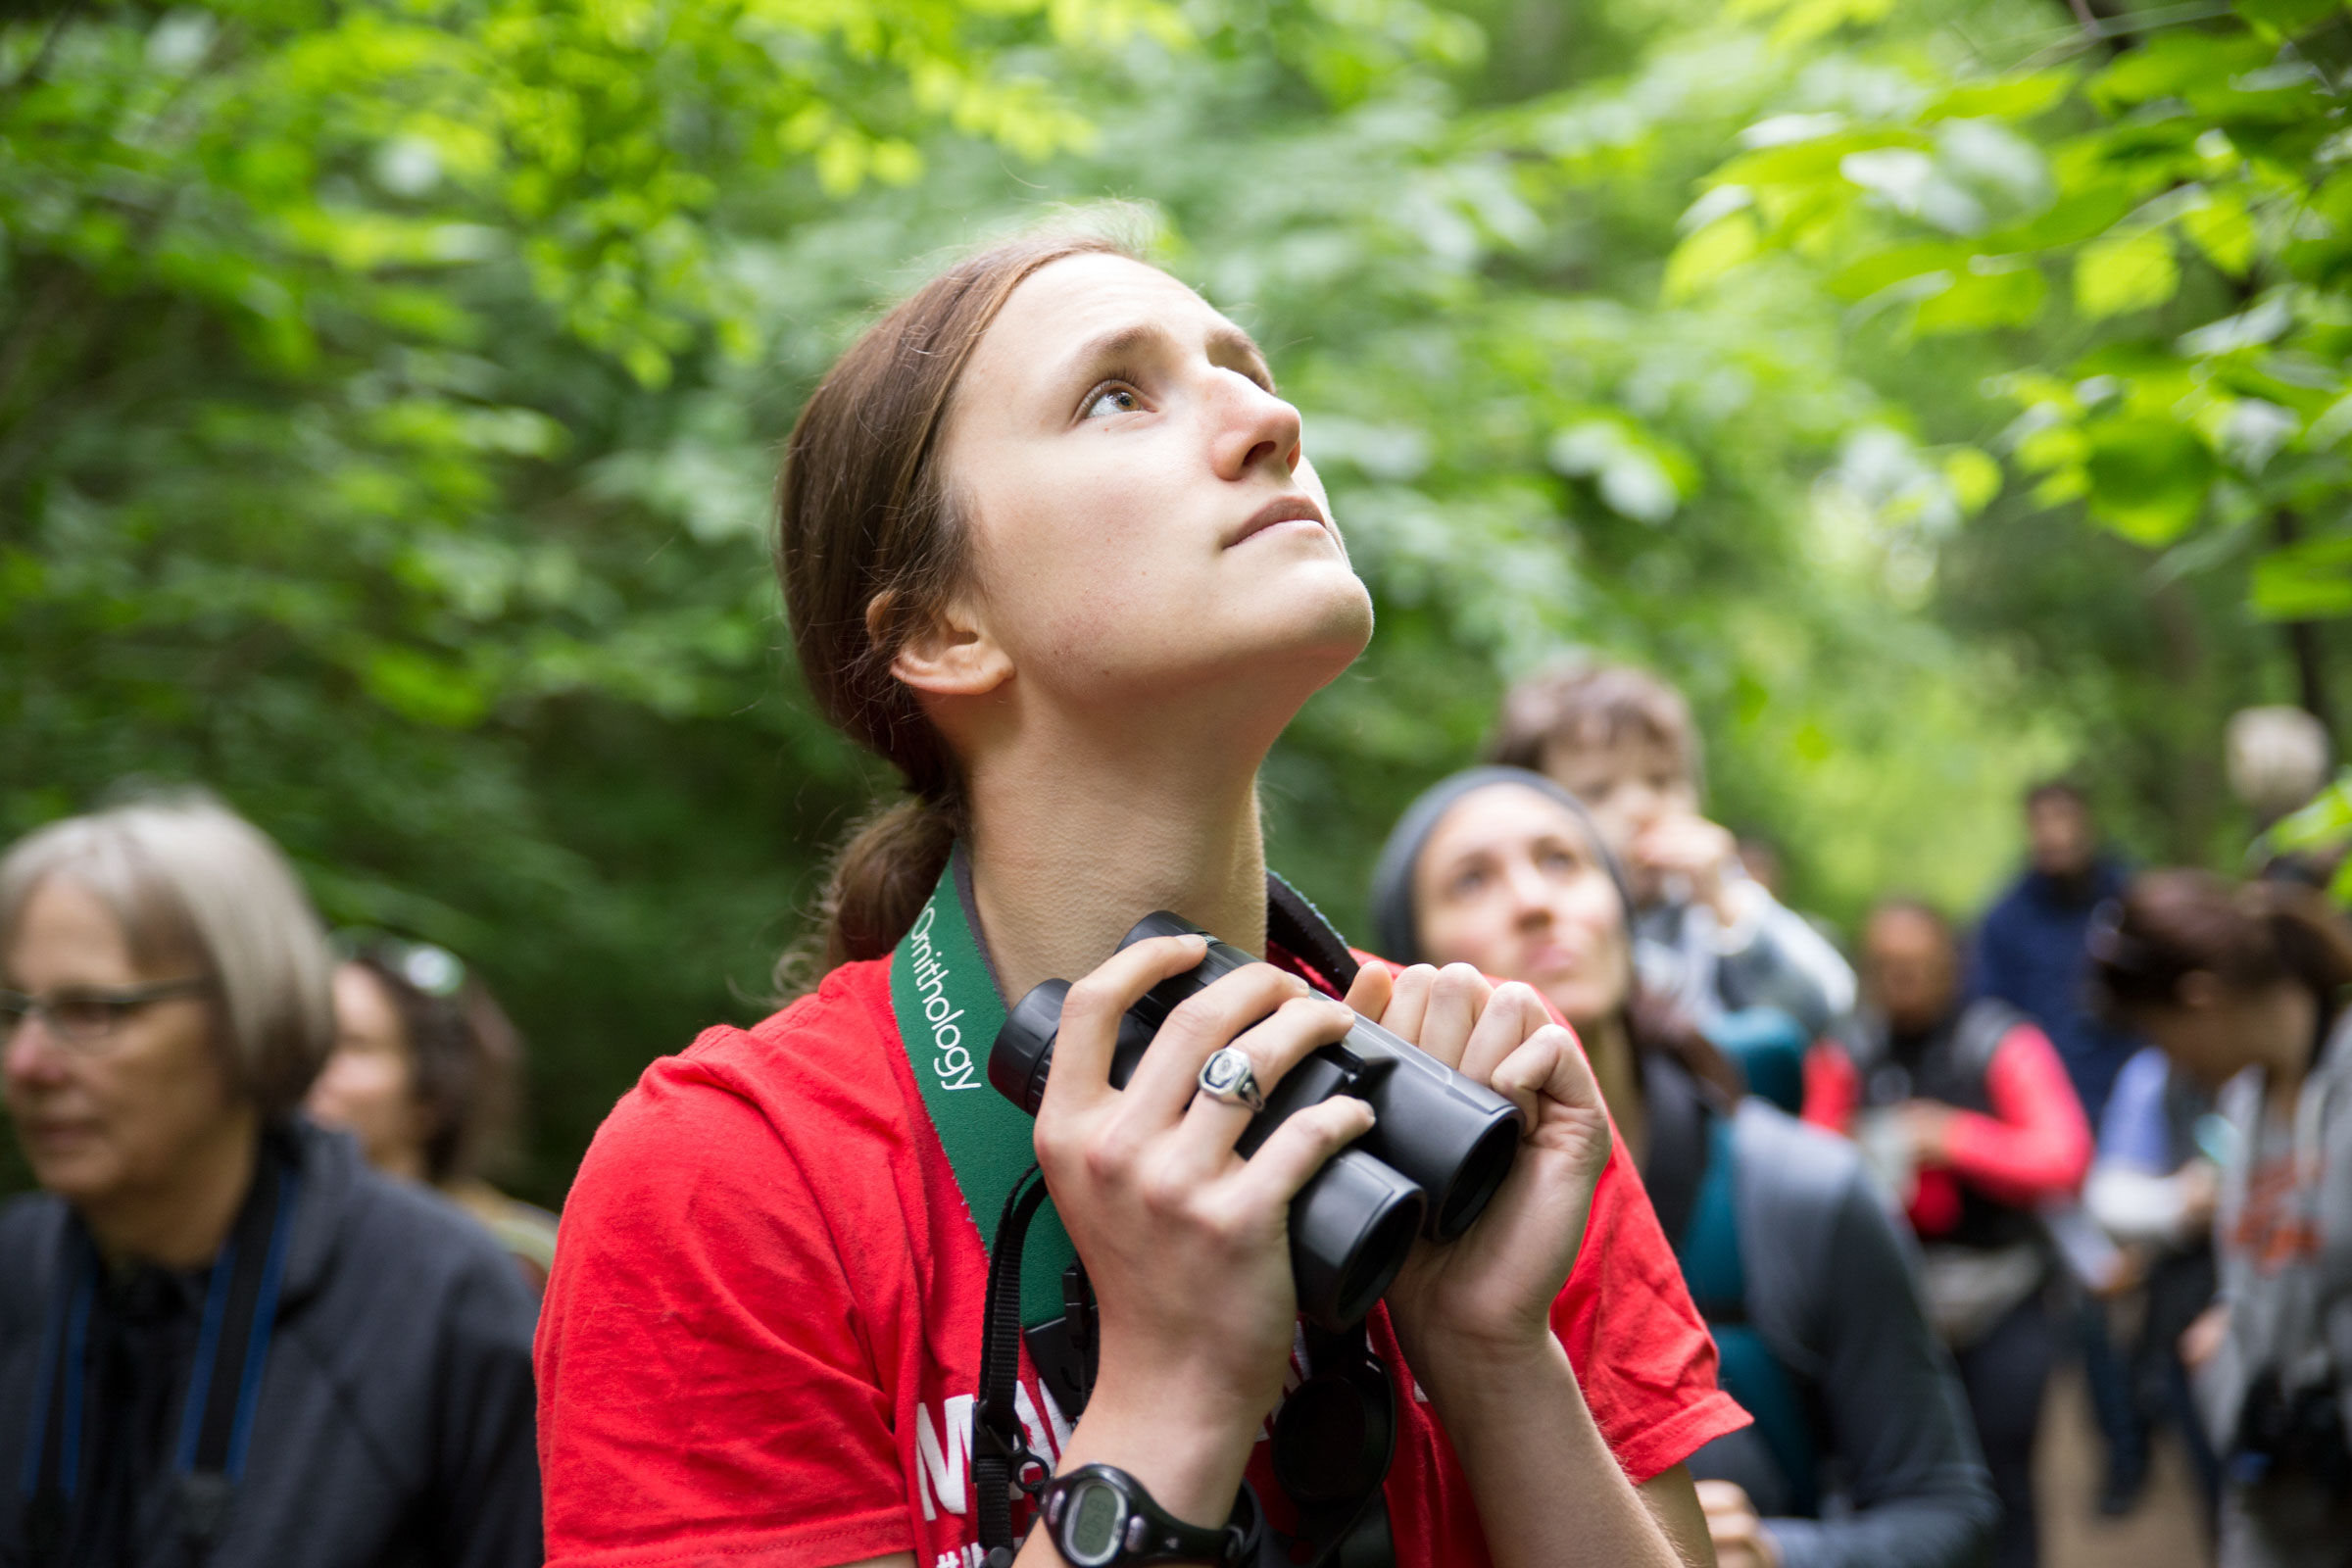 High school student Claire Wayner doubles as a highly skilled bird guide. She can easily pick out and ID songbirds by ear, helping us log more species than we see on the final day of the festival. Camilla Cerea/Audubon